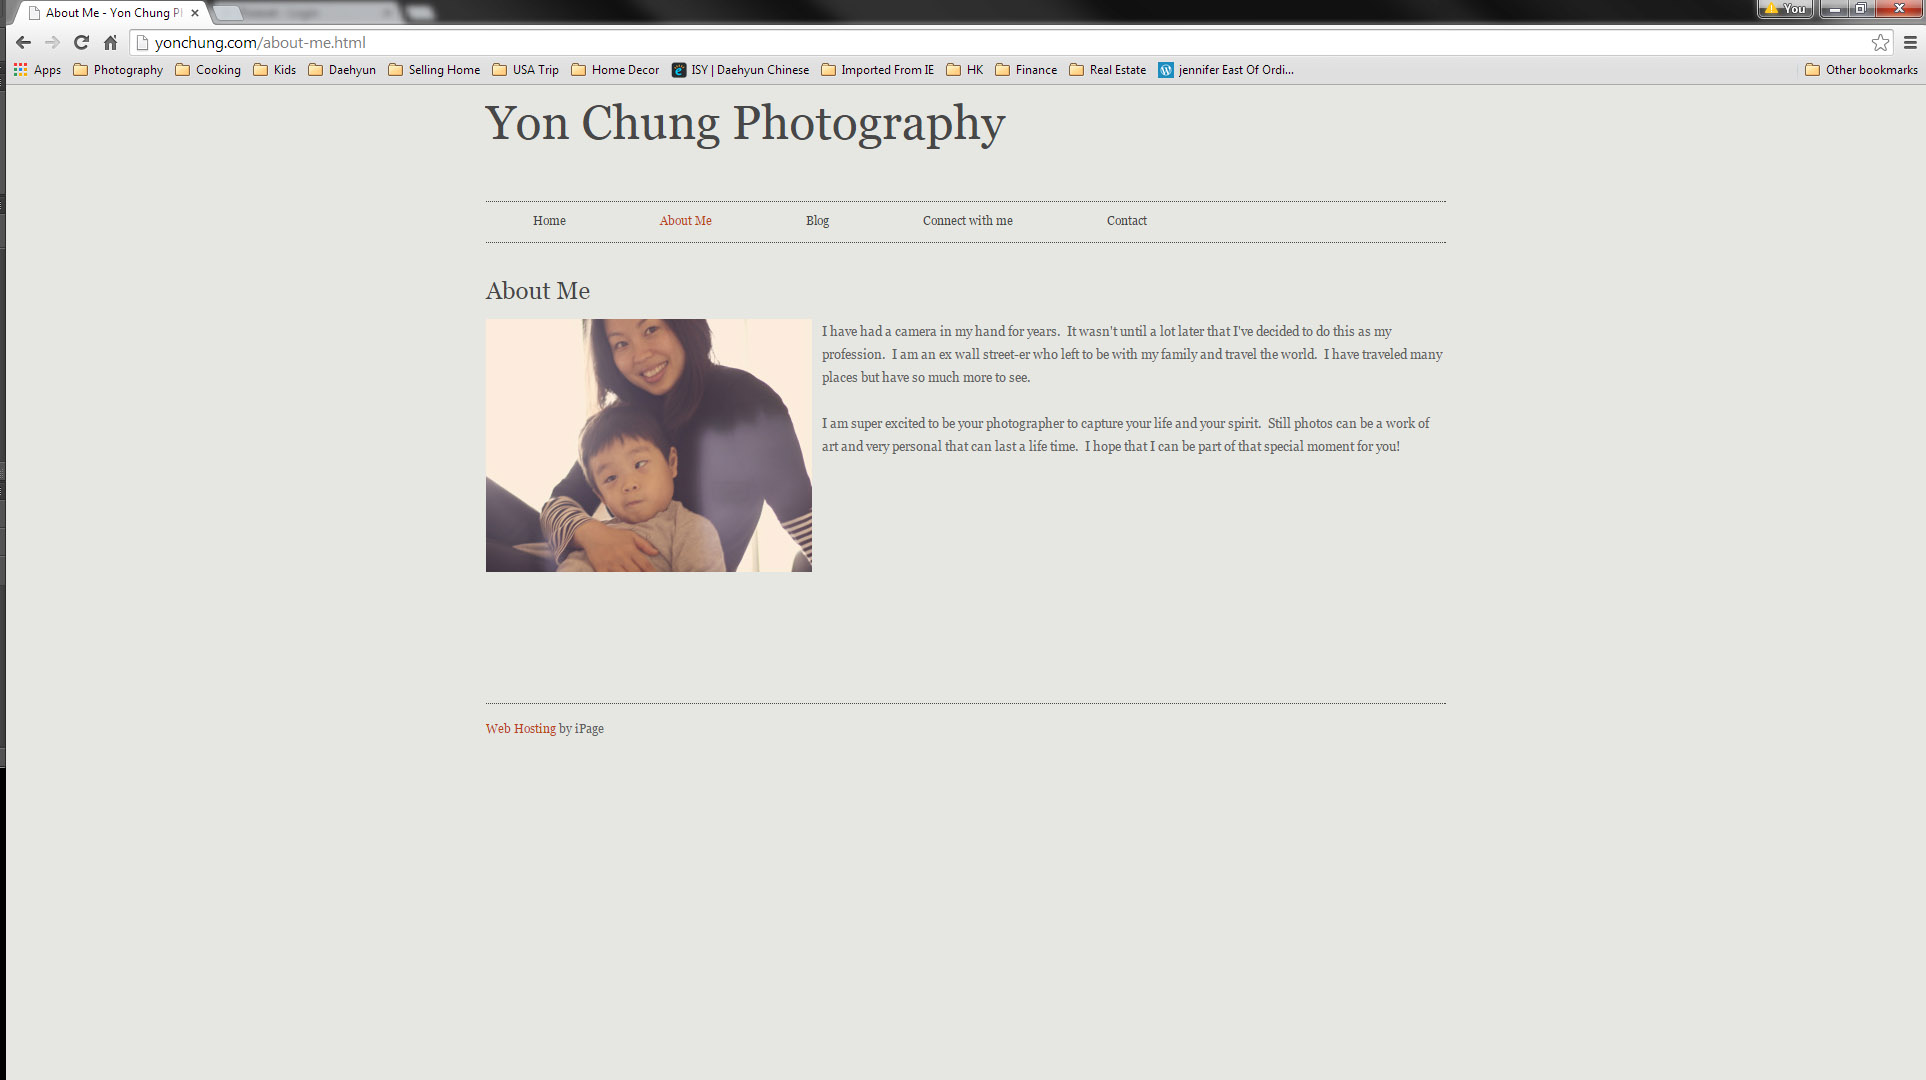 Oh gosh.. The only thing awesome about the old website is the picture of me and my son. I